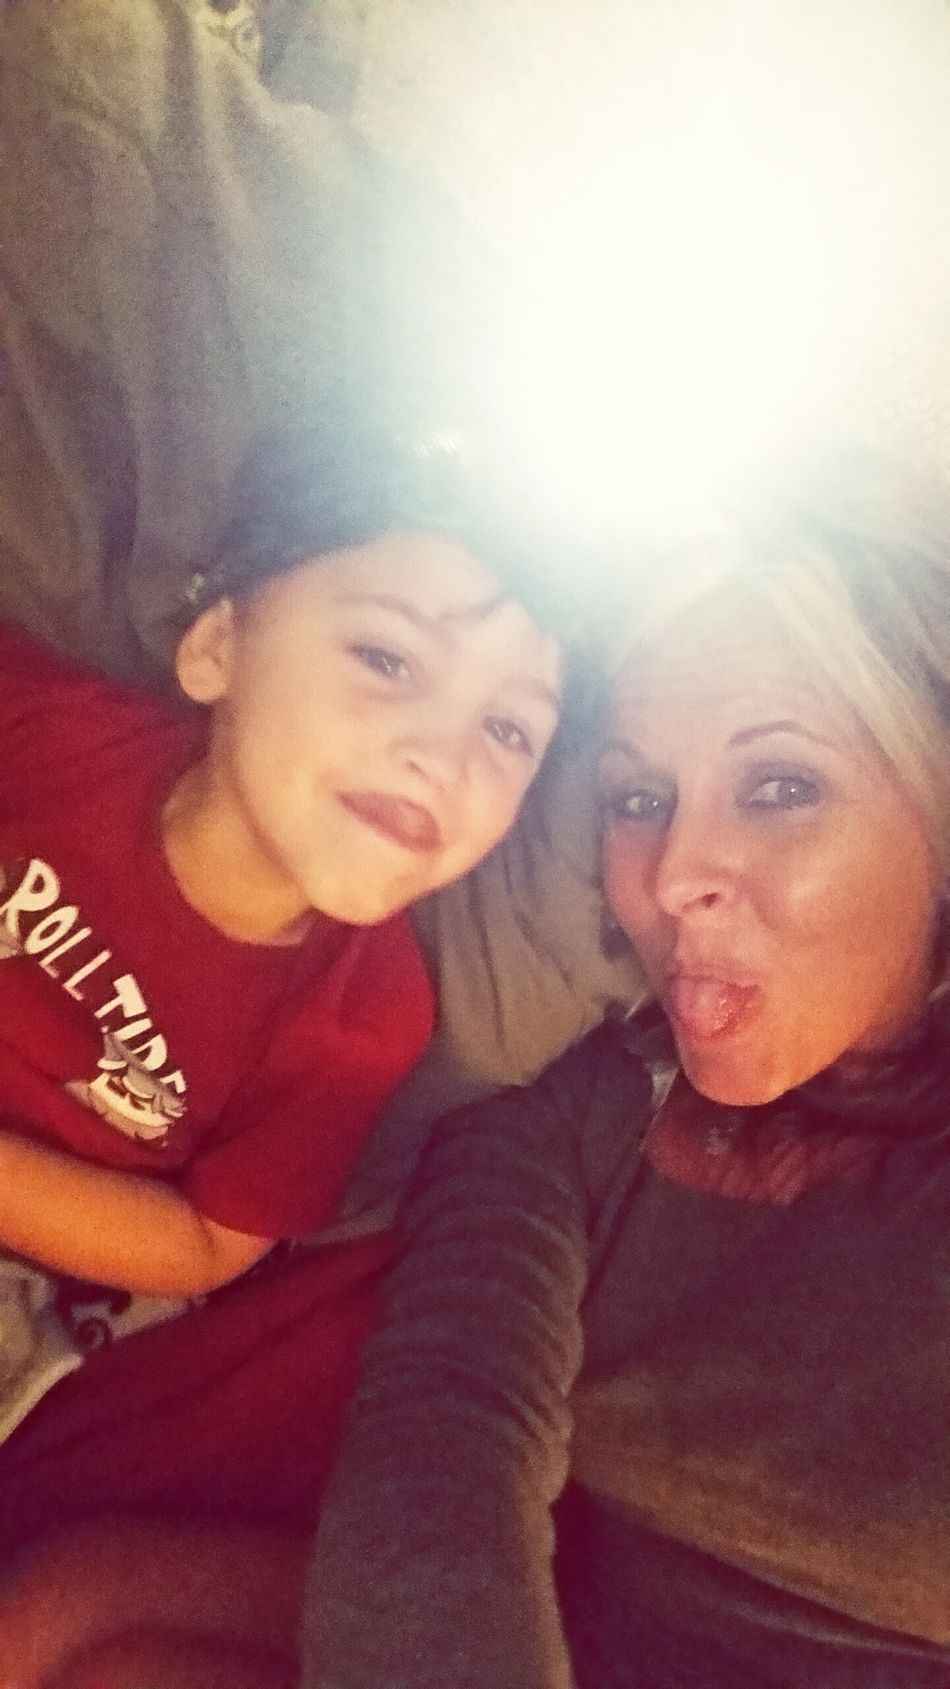 The love I have for this lil one knows no boundaries Taking Photos Cheese! Enjoying Life My World ♥ He Has My Heart❤